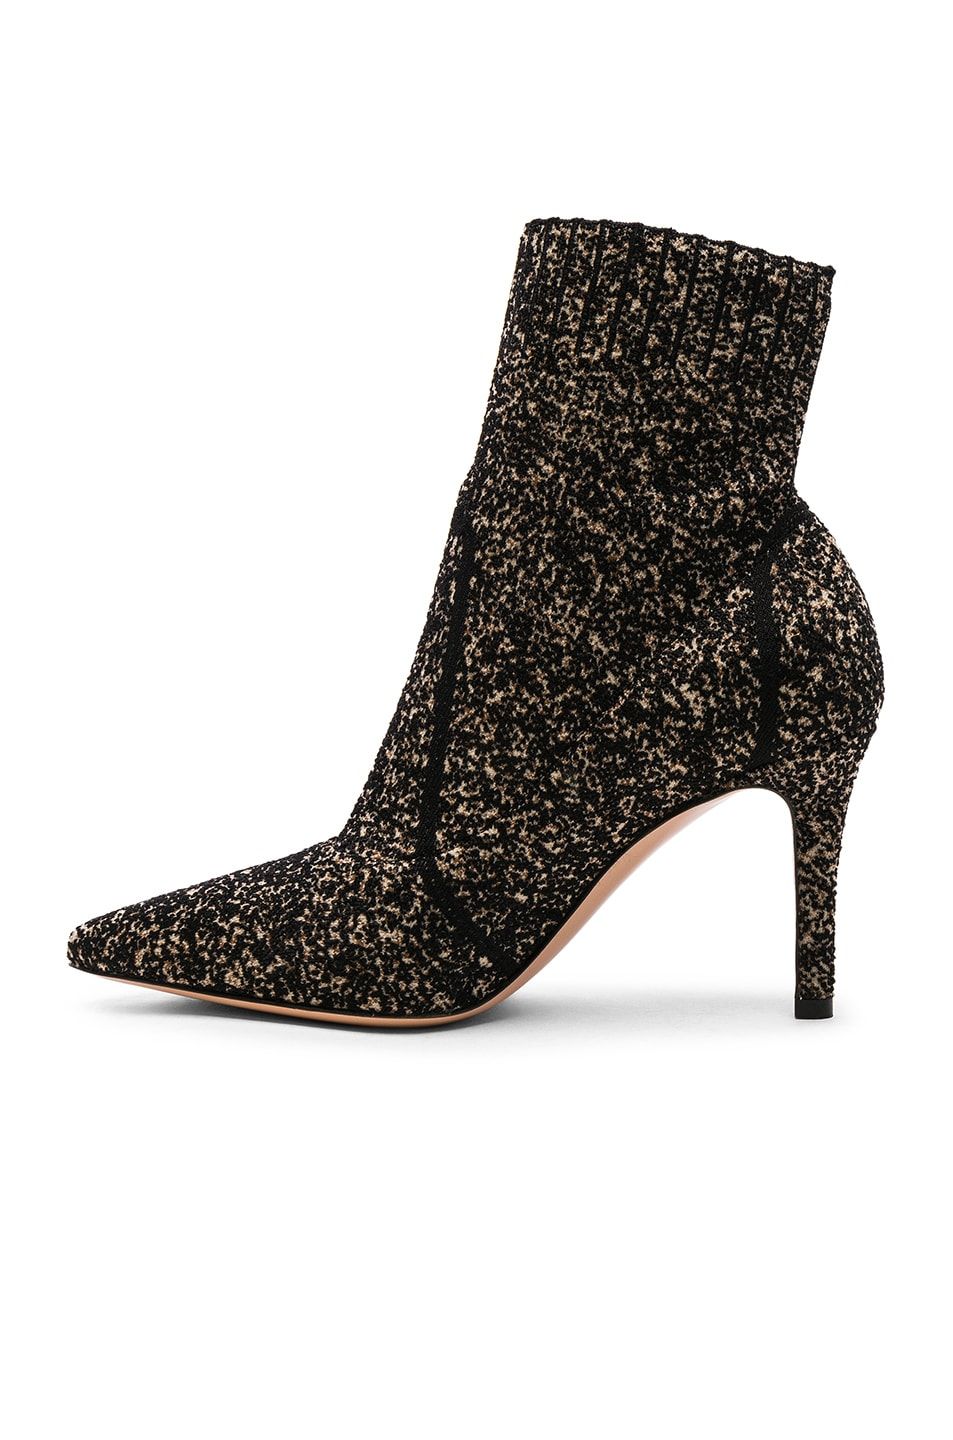 Image 5 of Gianvito Rossi Boucle Knit Katie Ankle Booties in Black & Bisque